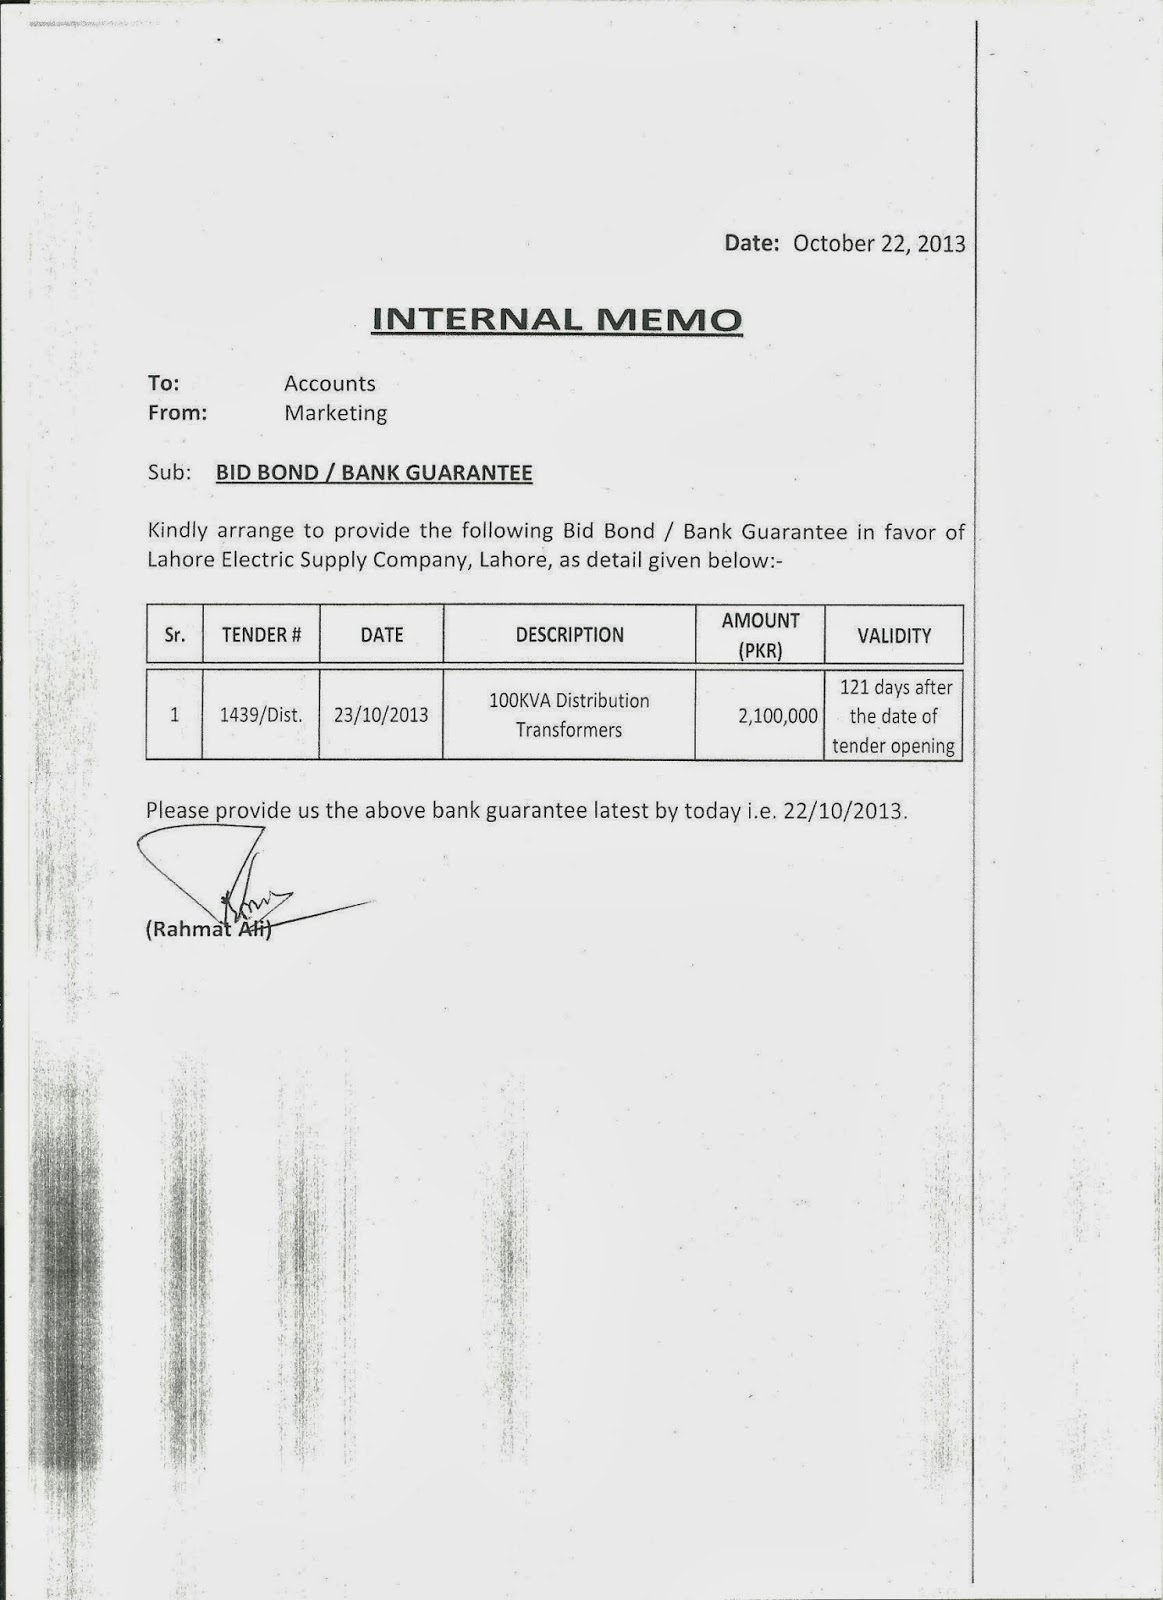 Internal memo format letter sample internal memo letter for bank guarantee altavistaventures Choice Image